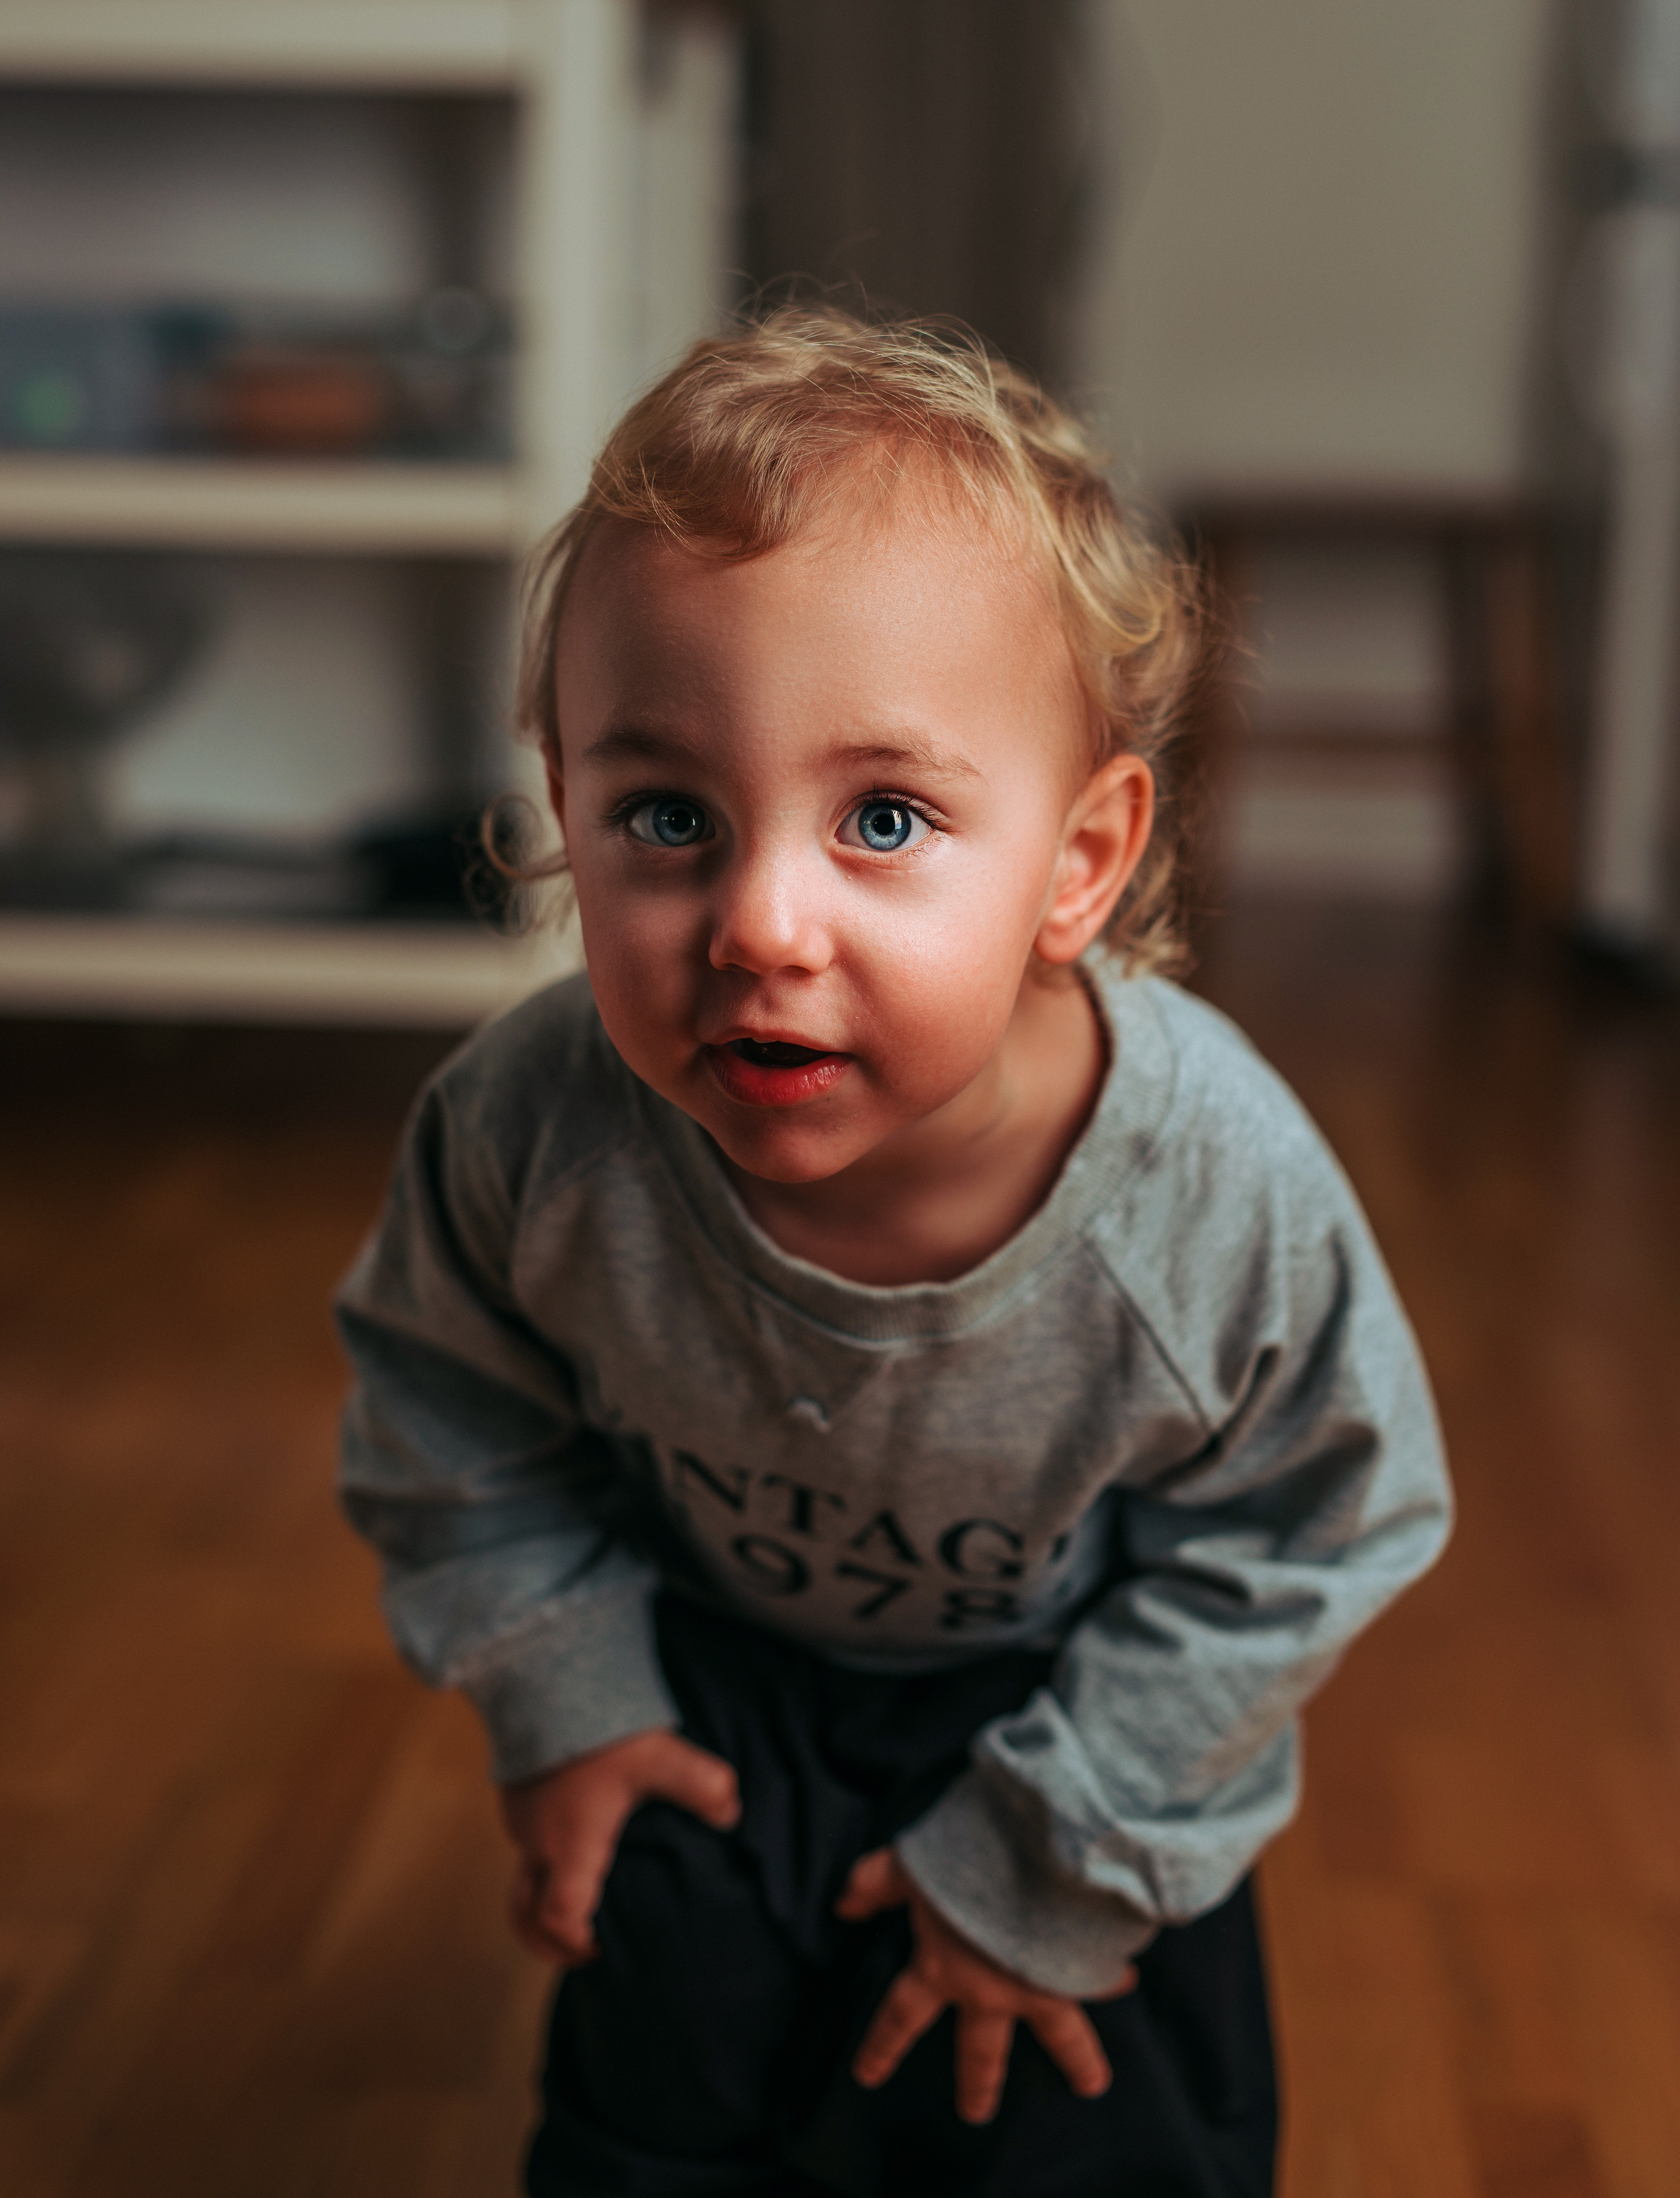 Toddler looking for someone | Photo by ?? Janko Ferlič - @specialdaddy on Unsplash